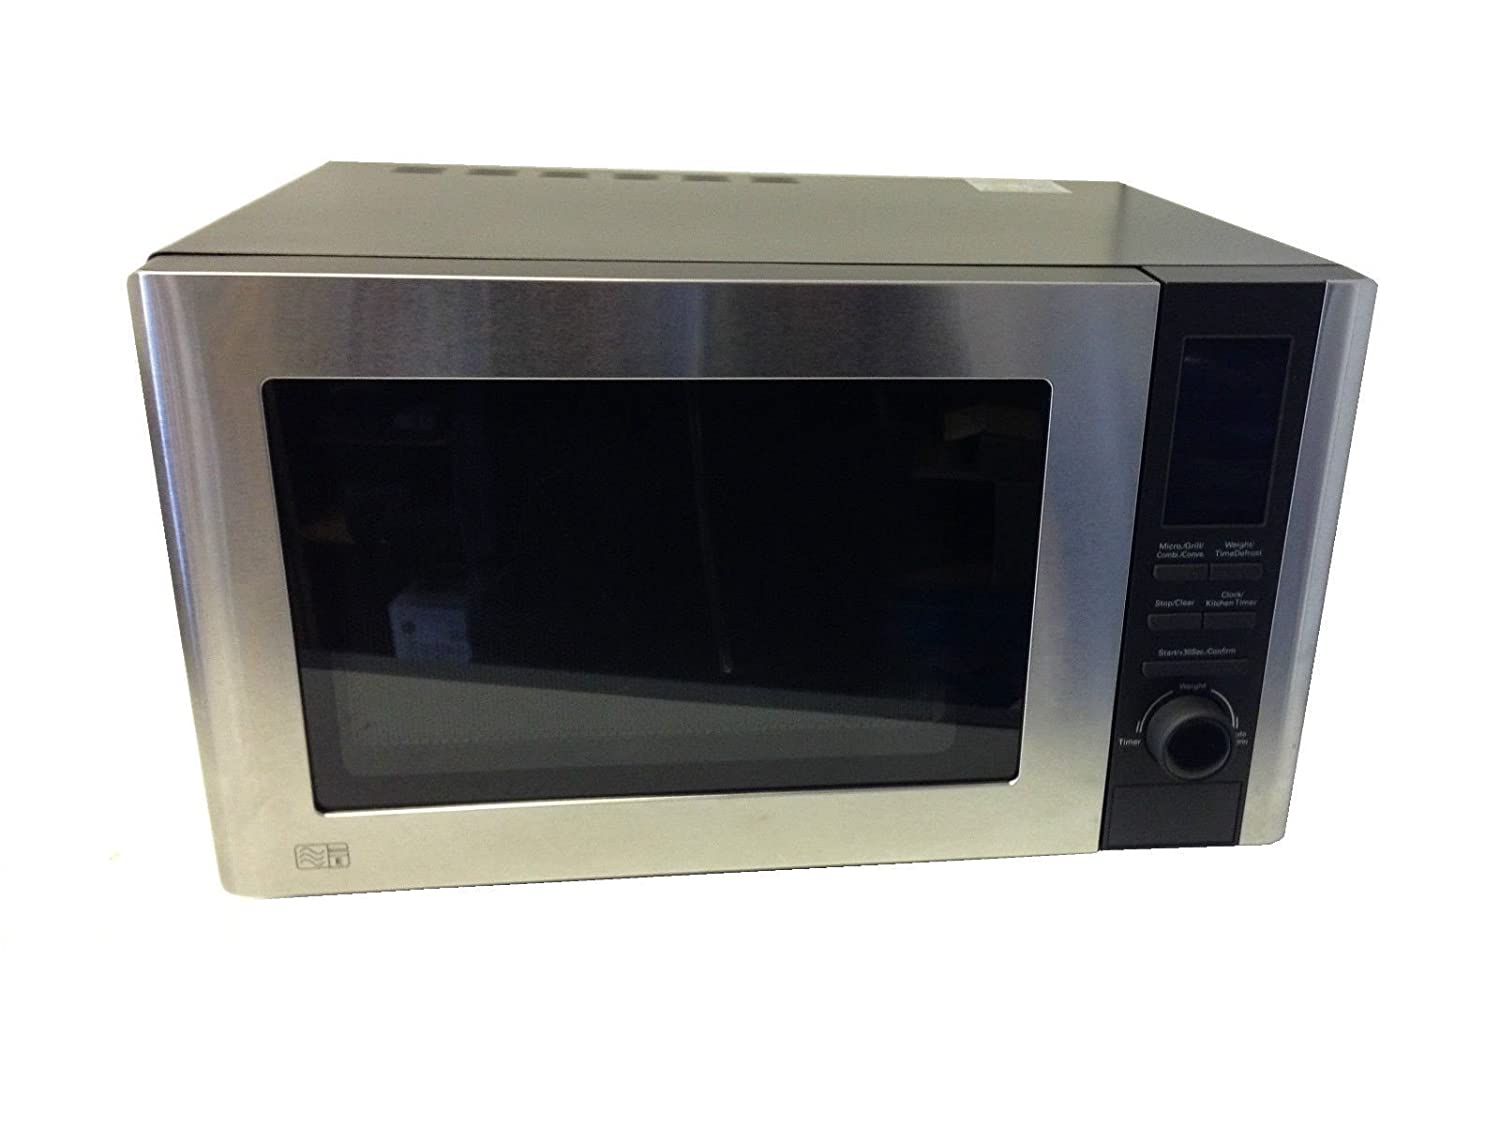 BLACK COMBINATION MICROWAVE GRILL CONVECTION OVEN 800W 23L 23 LITRE